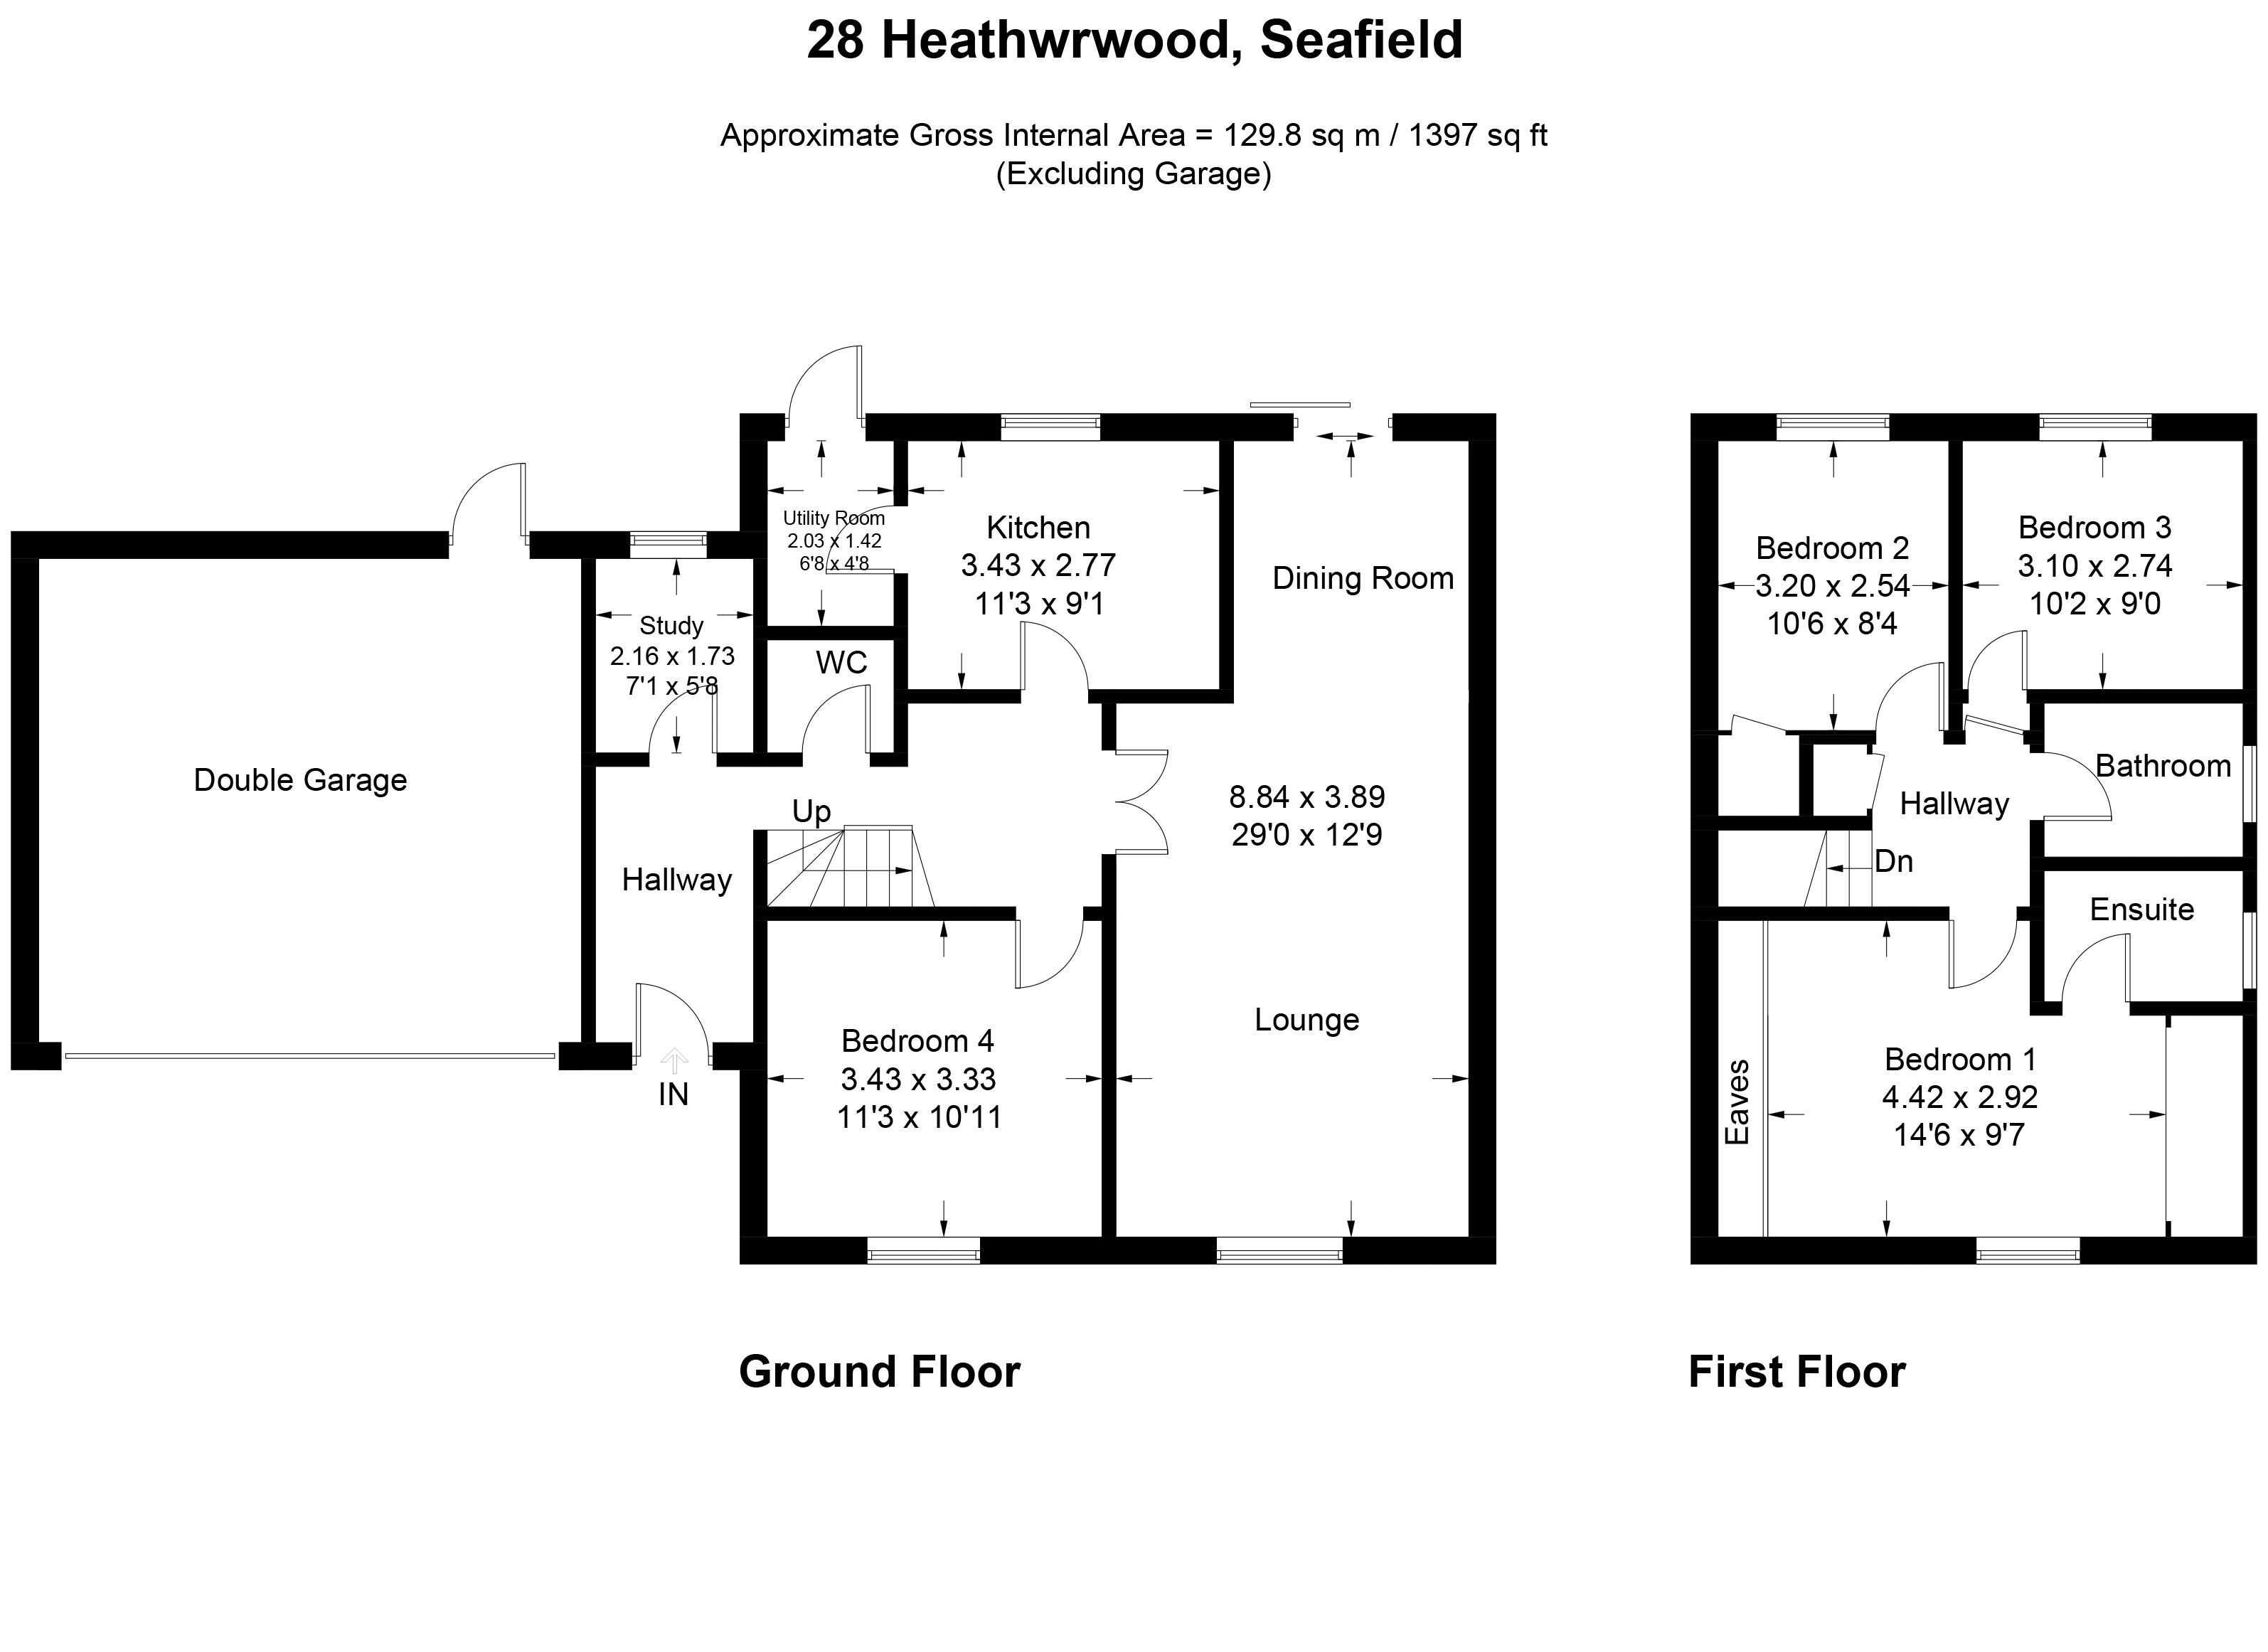 Heatherwood Seafield